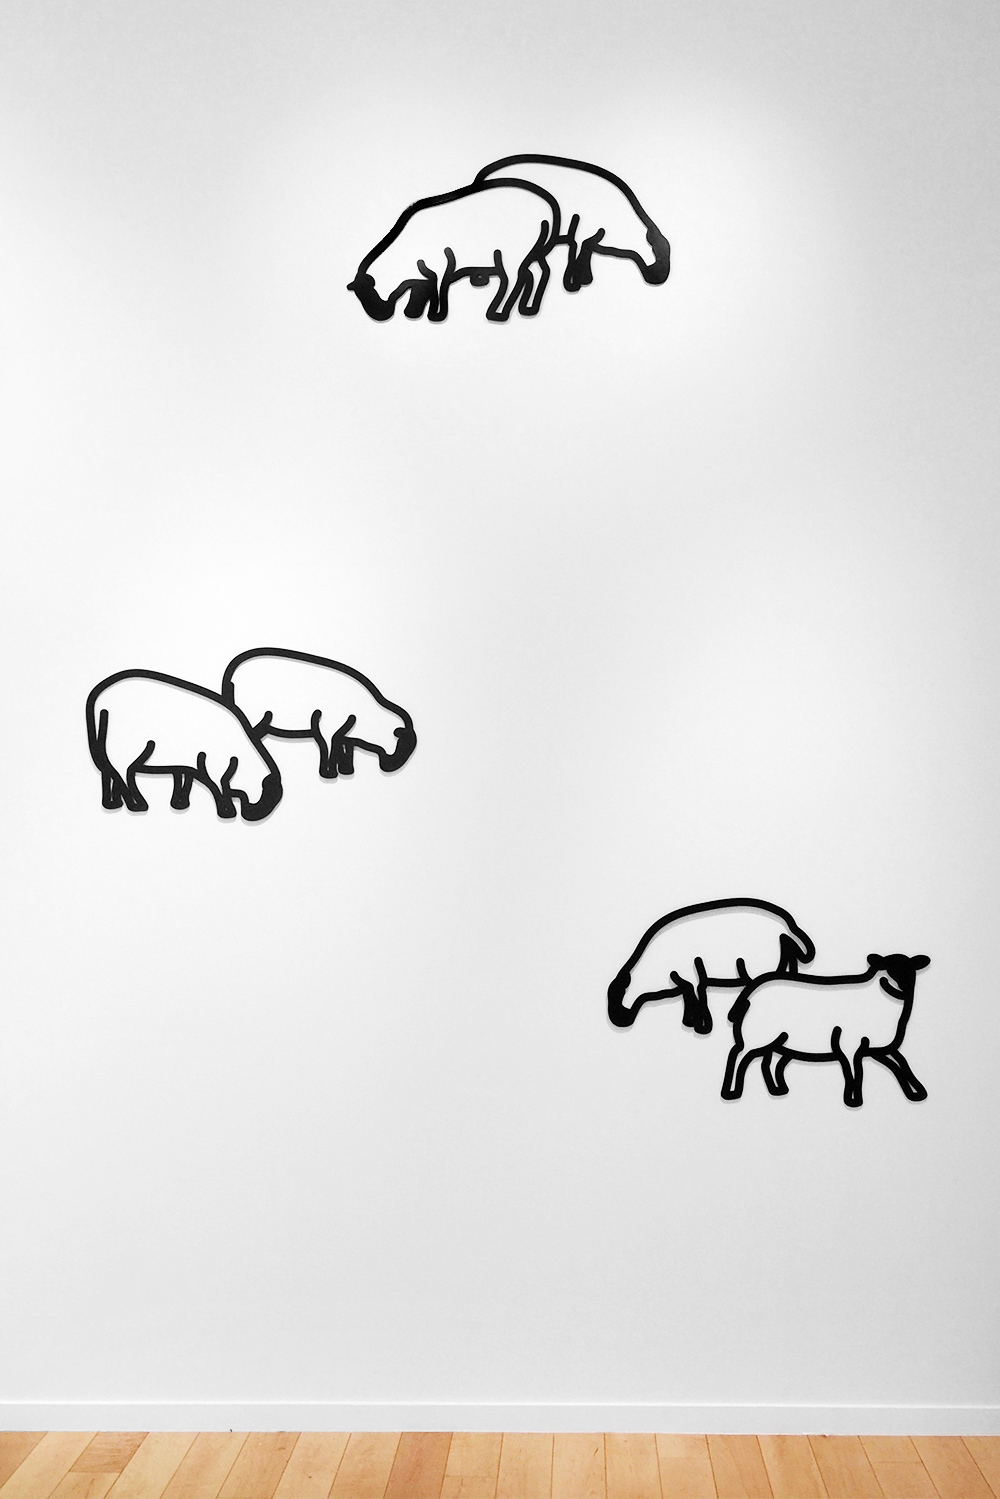 julian-opie-sheep-nature-1